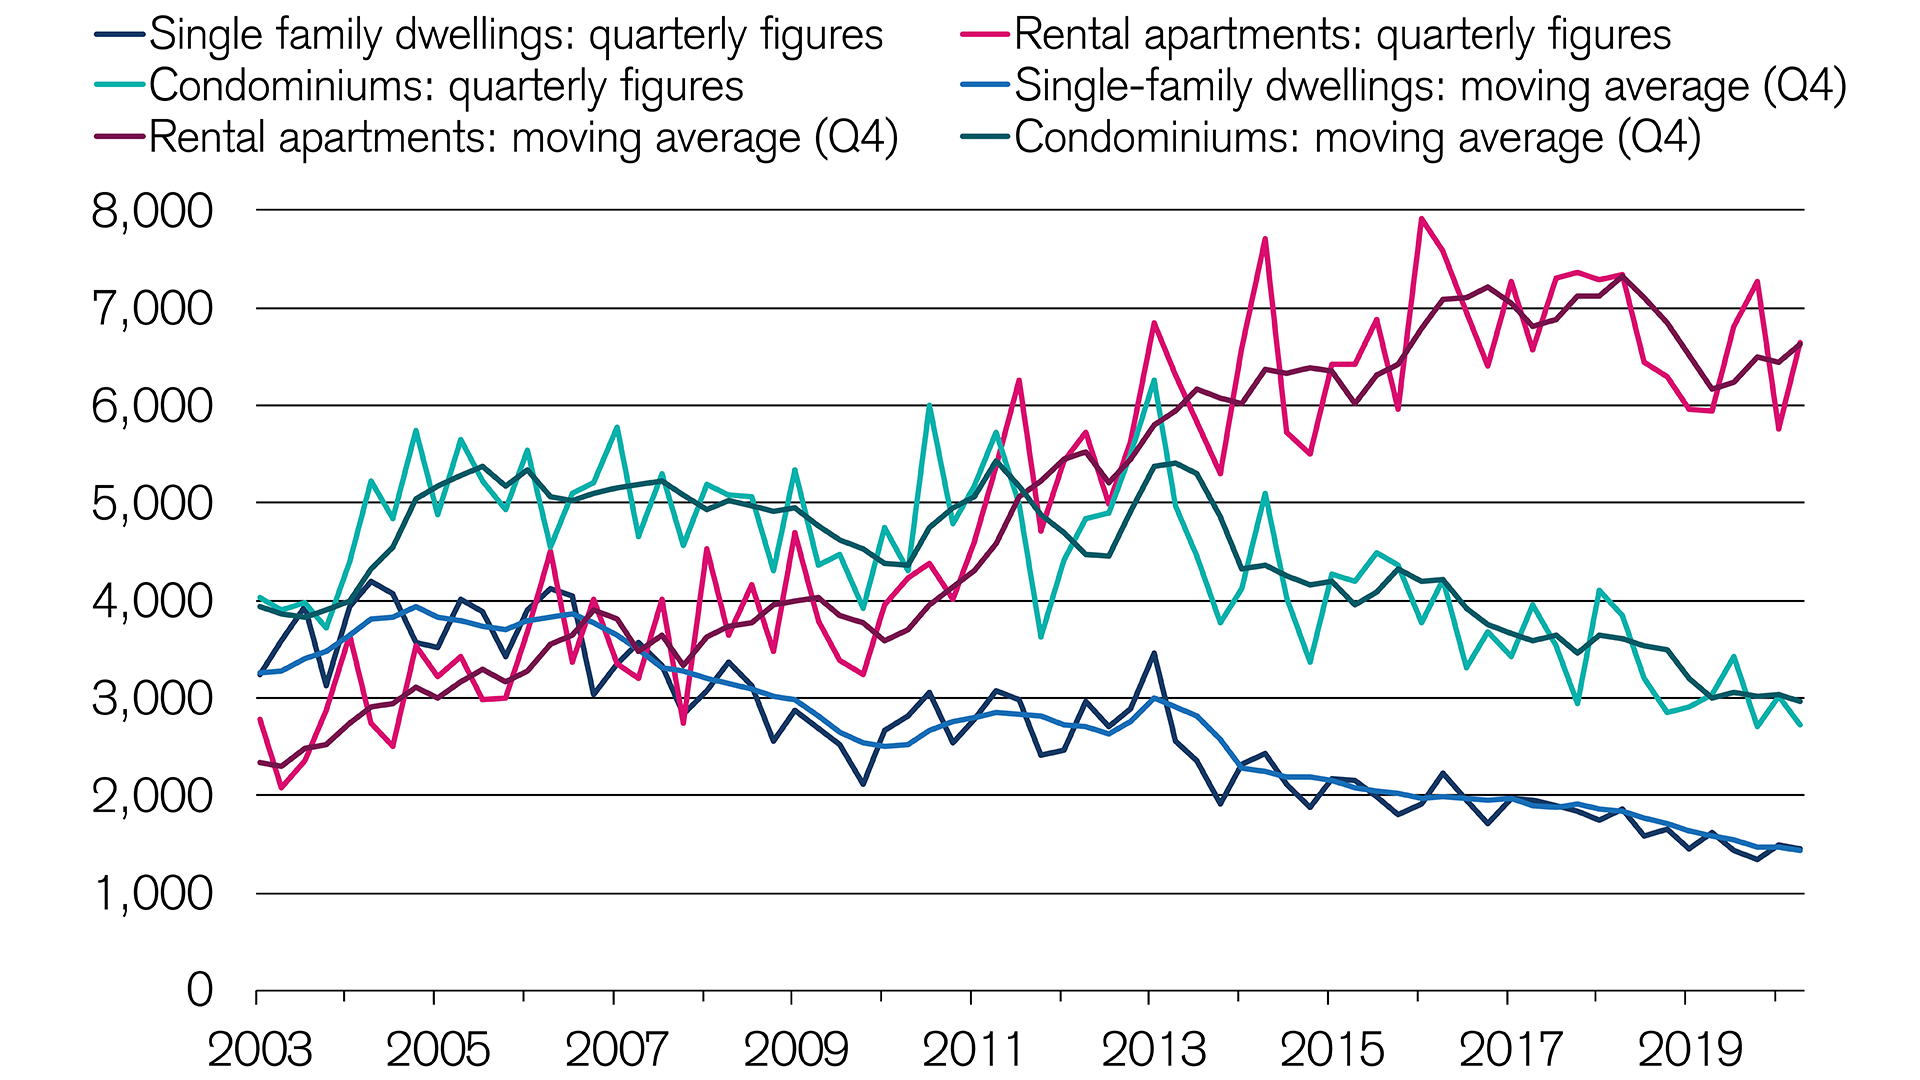 Increasing number of building permits in the rental segment